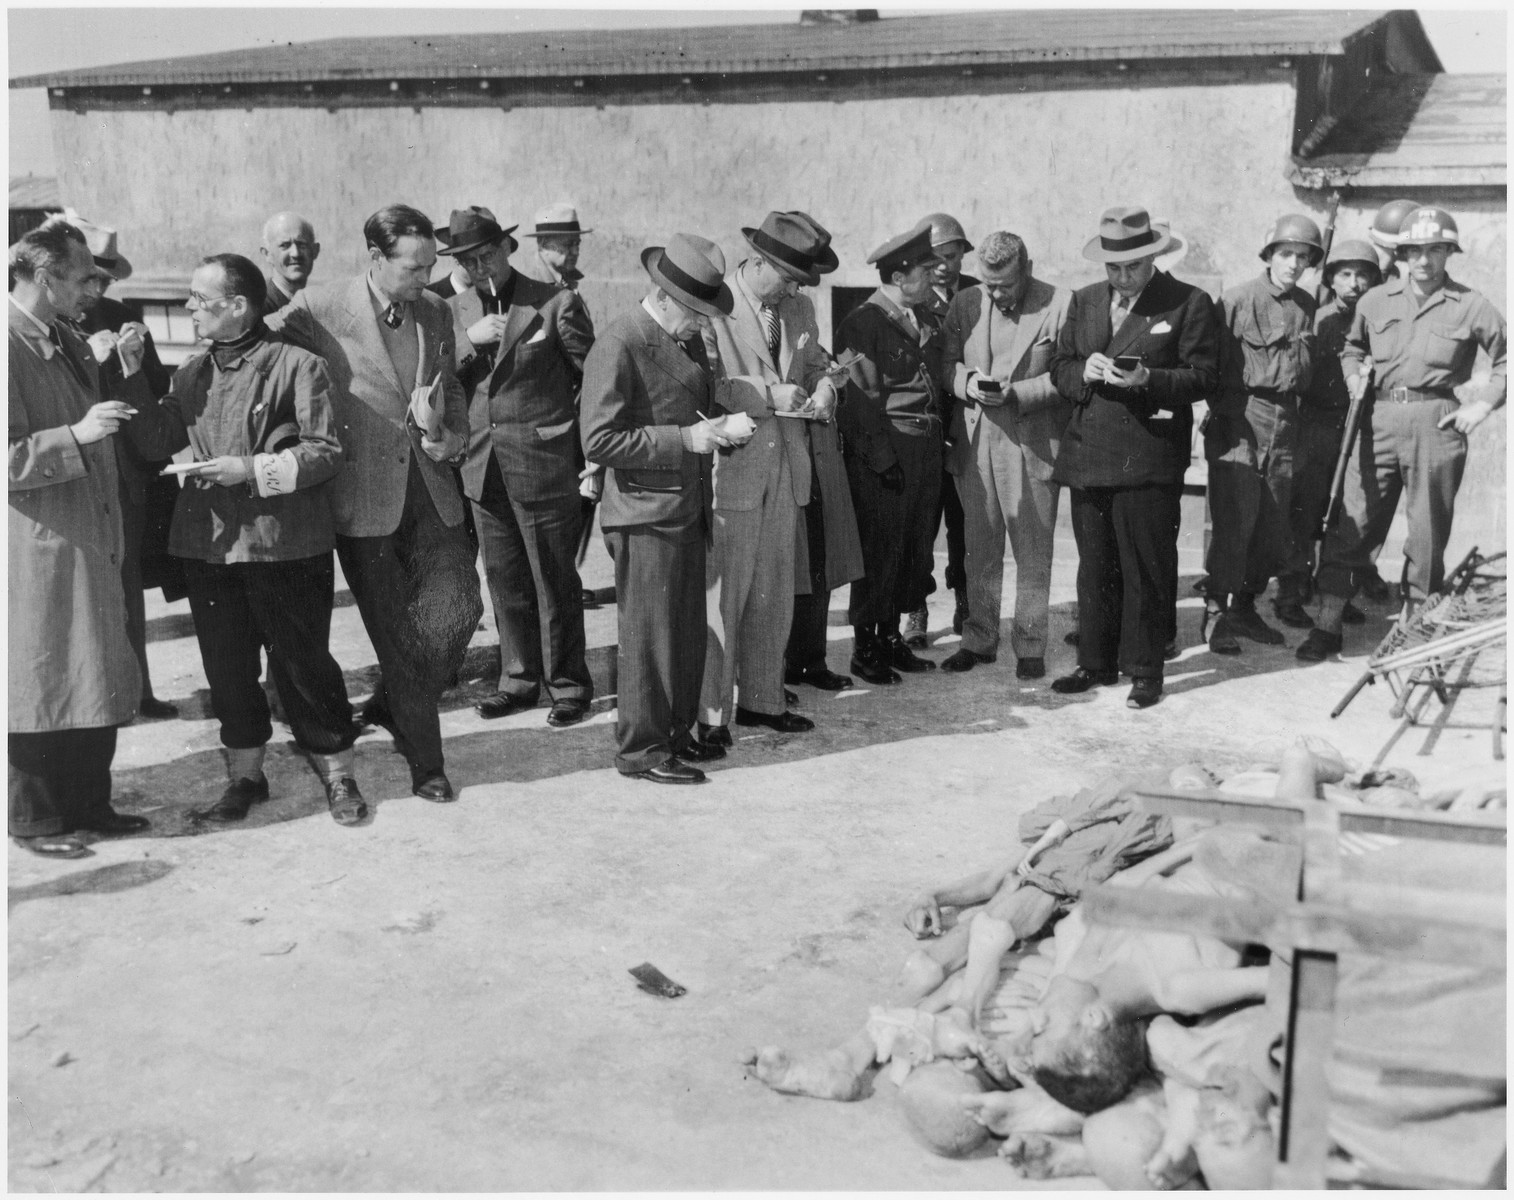 Journalists, accompanied by American military police, conduct an inspection tour of the newly liberated Buchenwald concentration camp.